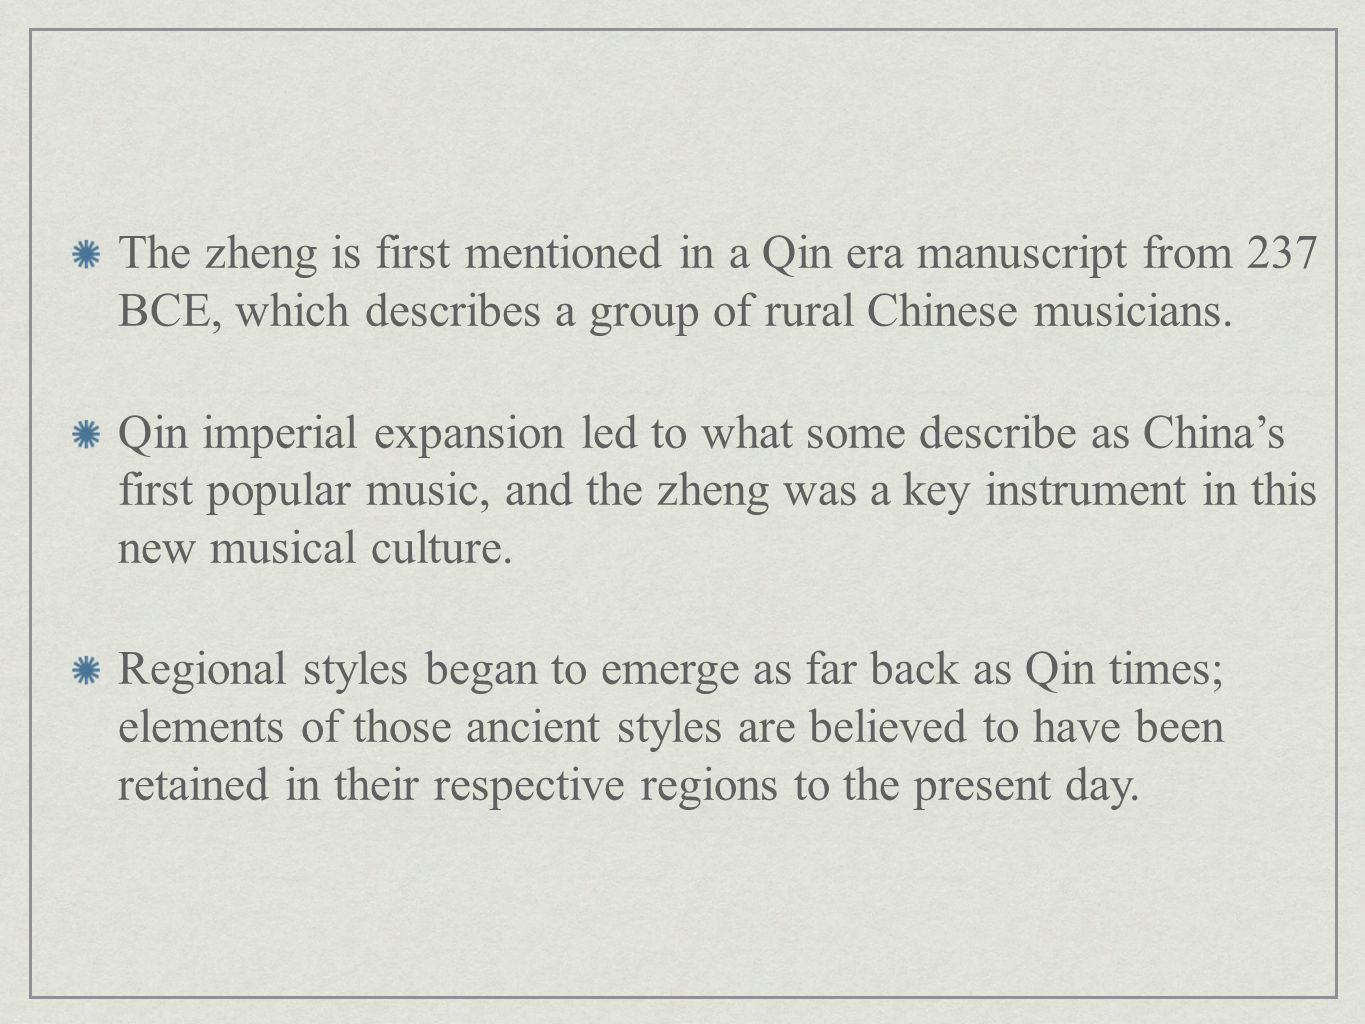 The zheng is first mentioned in a Qin era manuscript from 237 BCE, which describes a group of rural Chinese musicians.